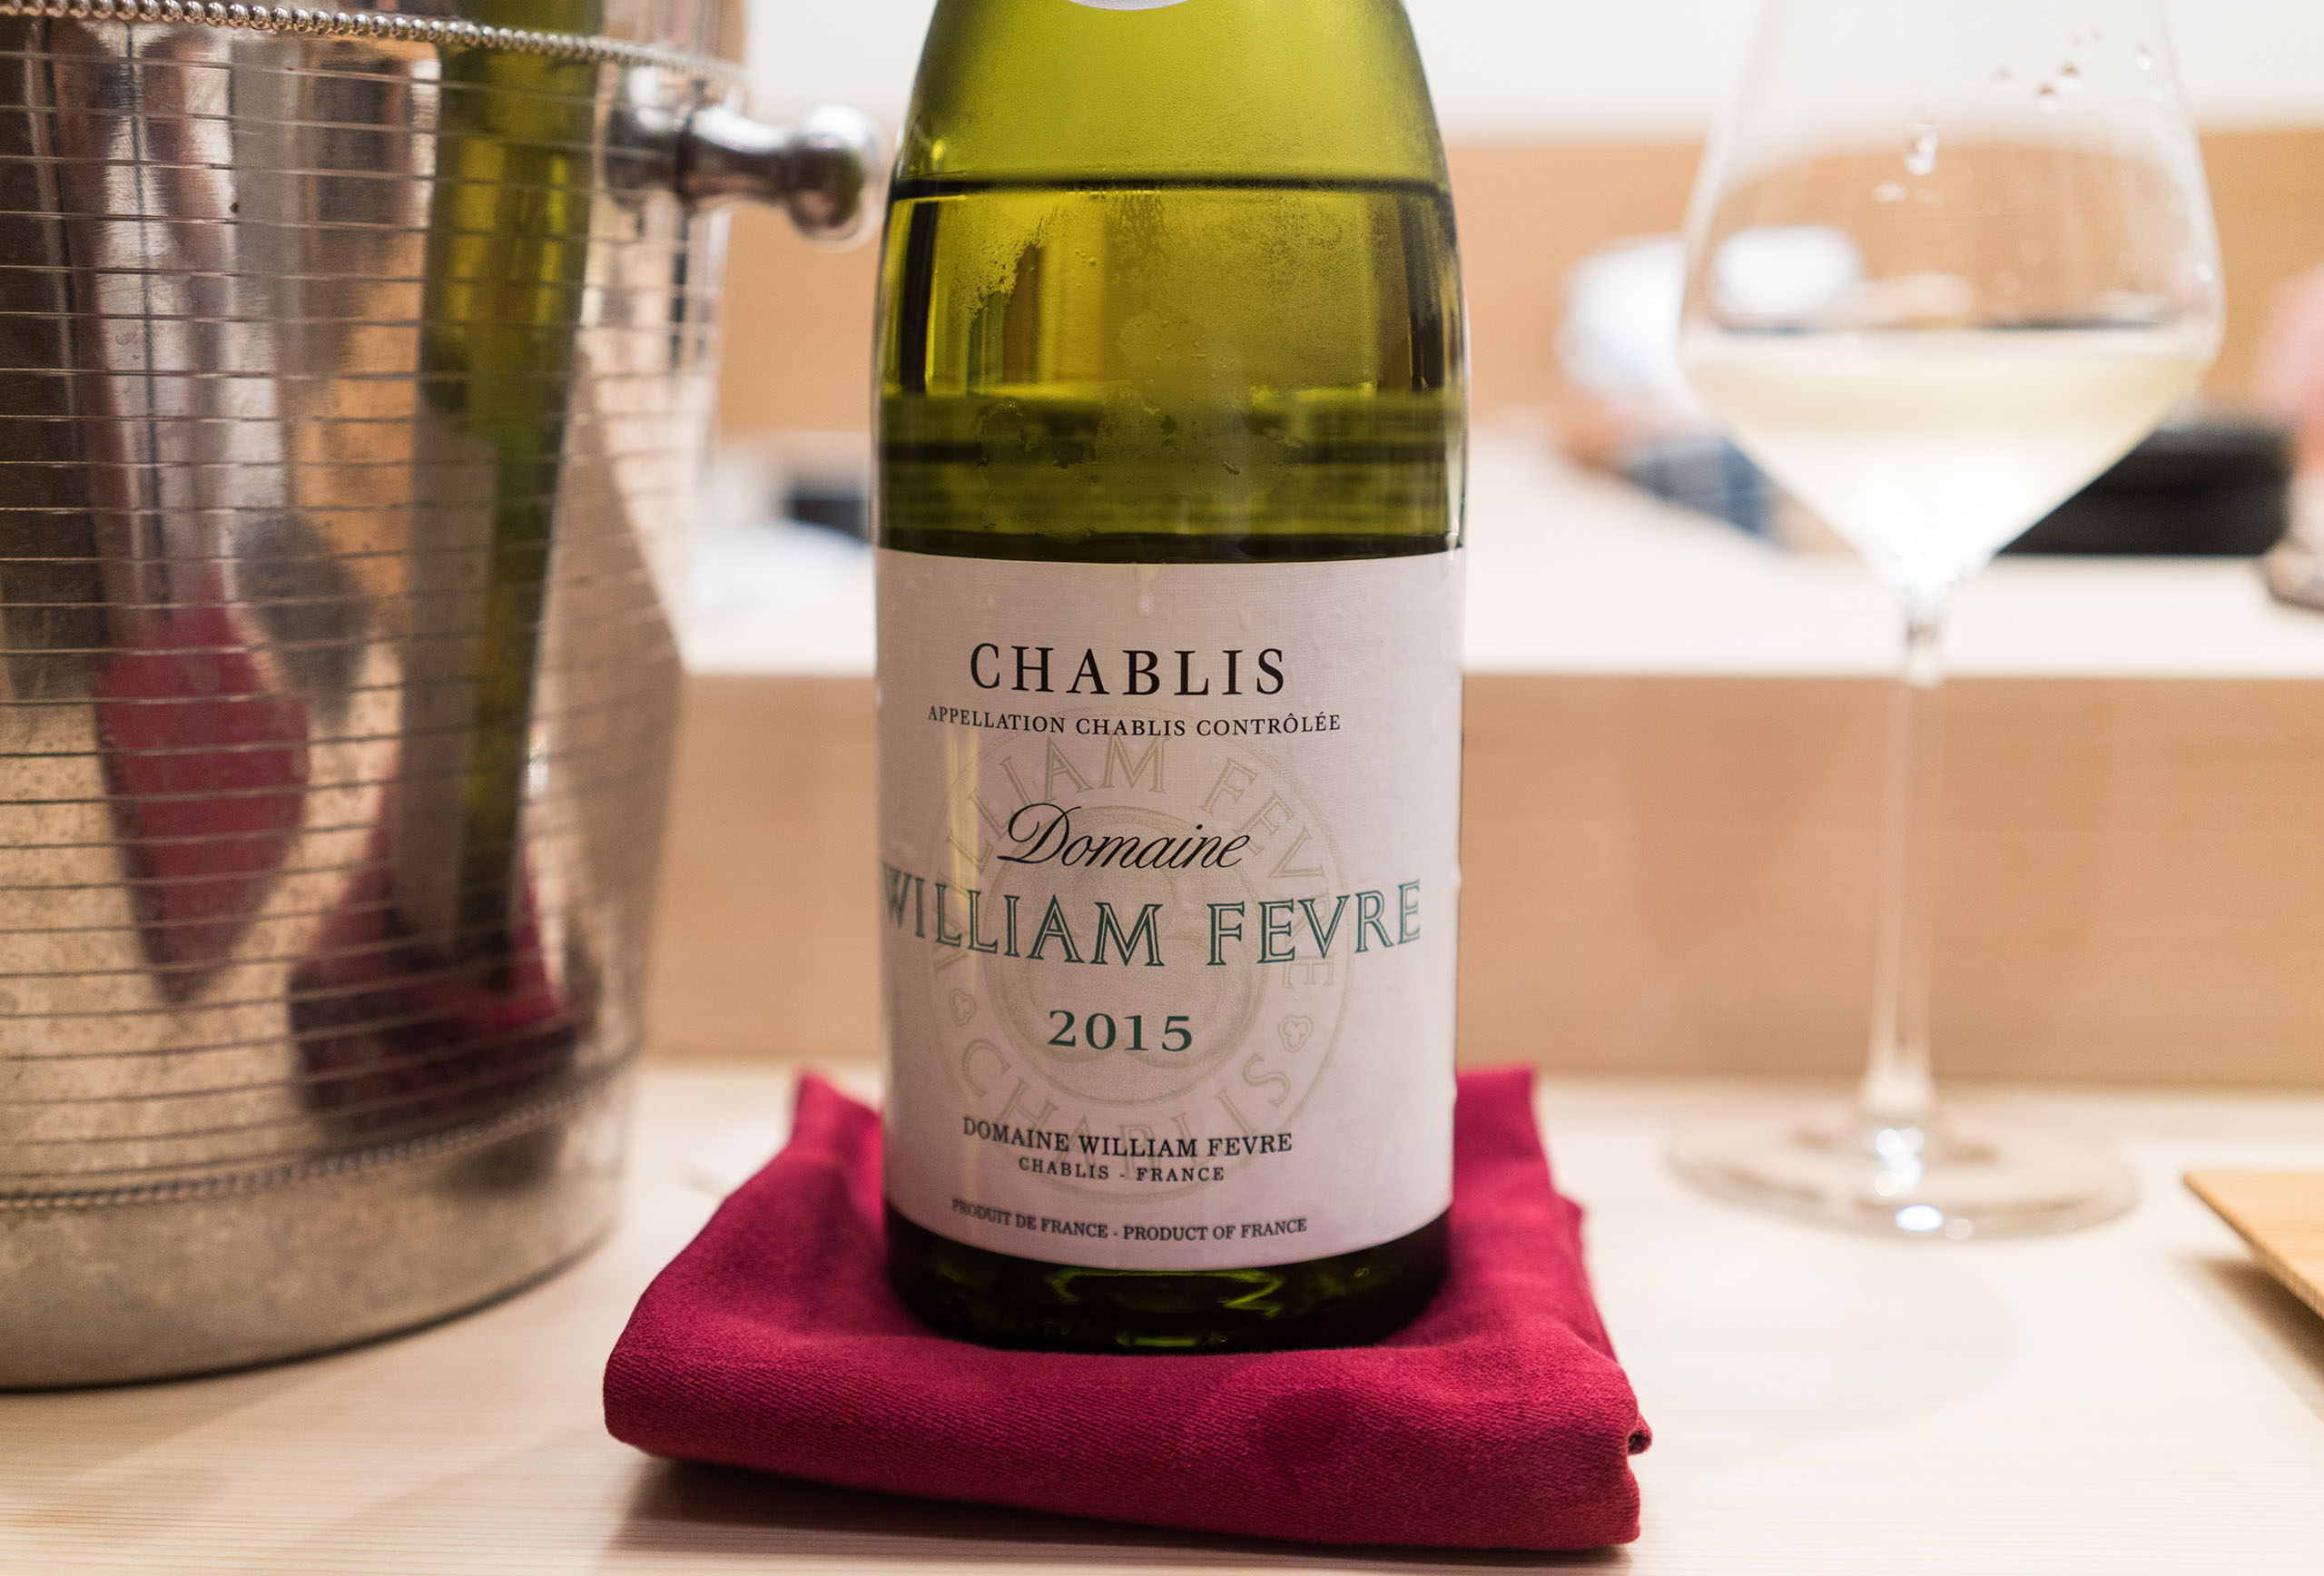 William Fevre Chablis 2015